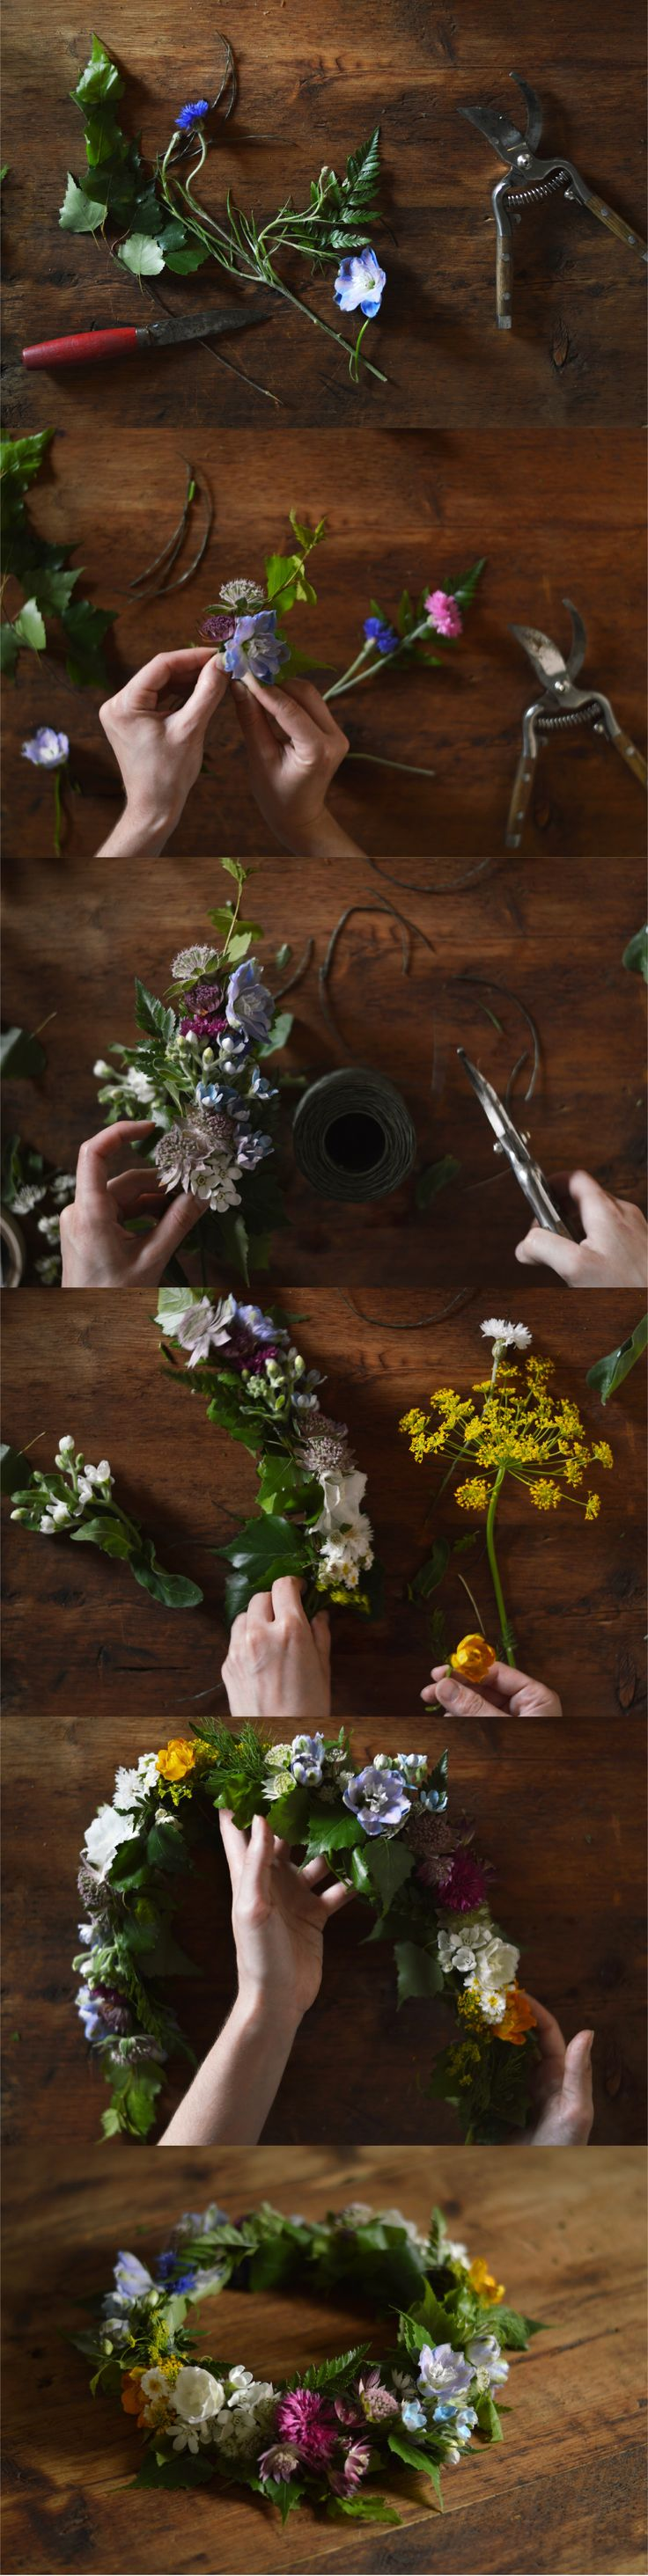 Celebrate the summer solstice in style with a DIY floral crown. Learn the steps on Vogue.com.